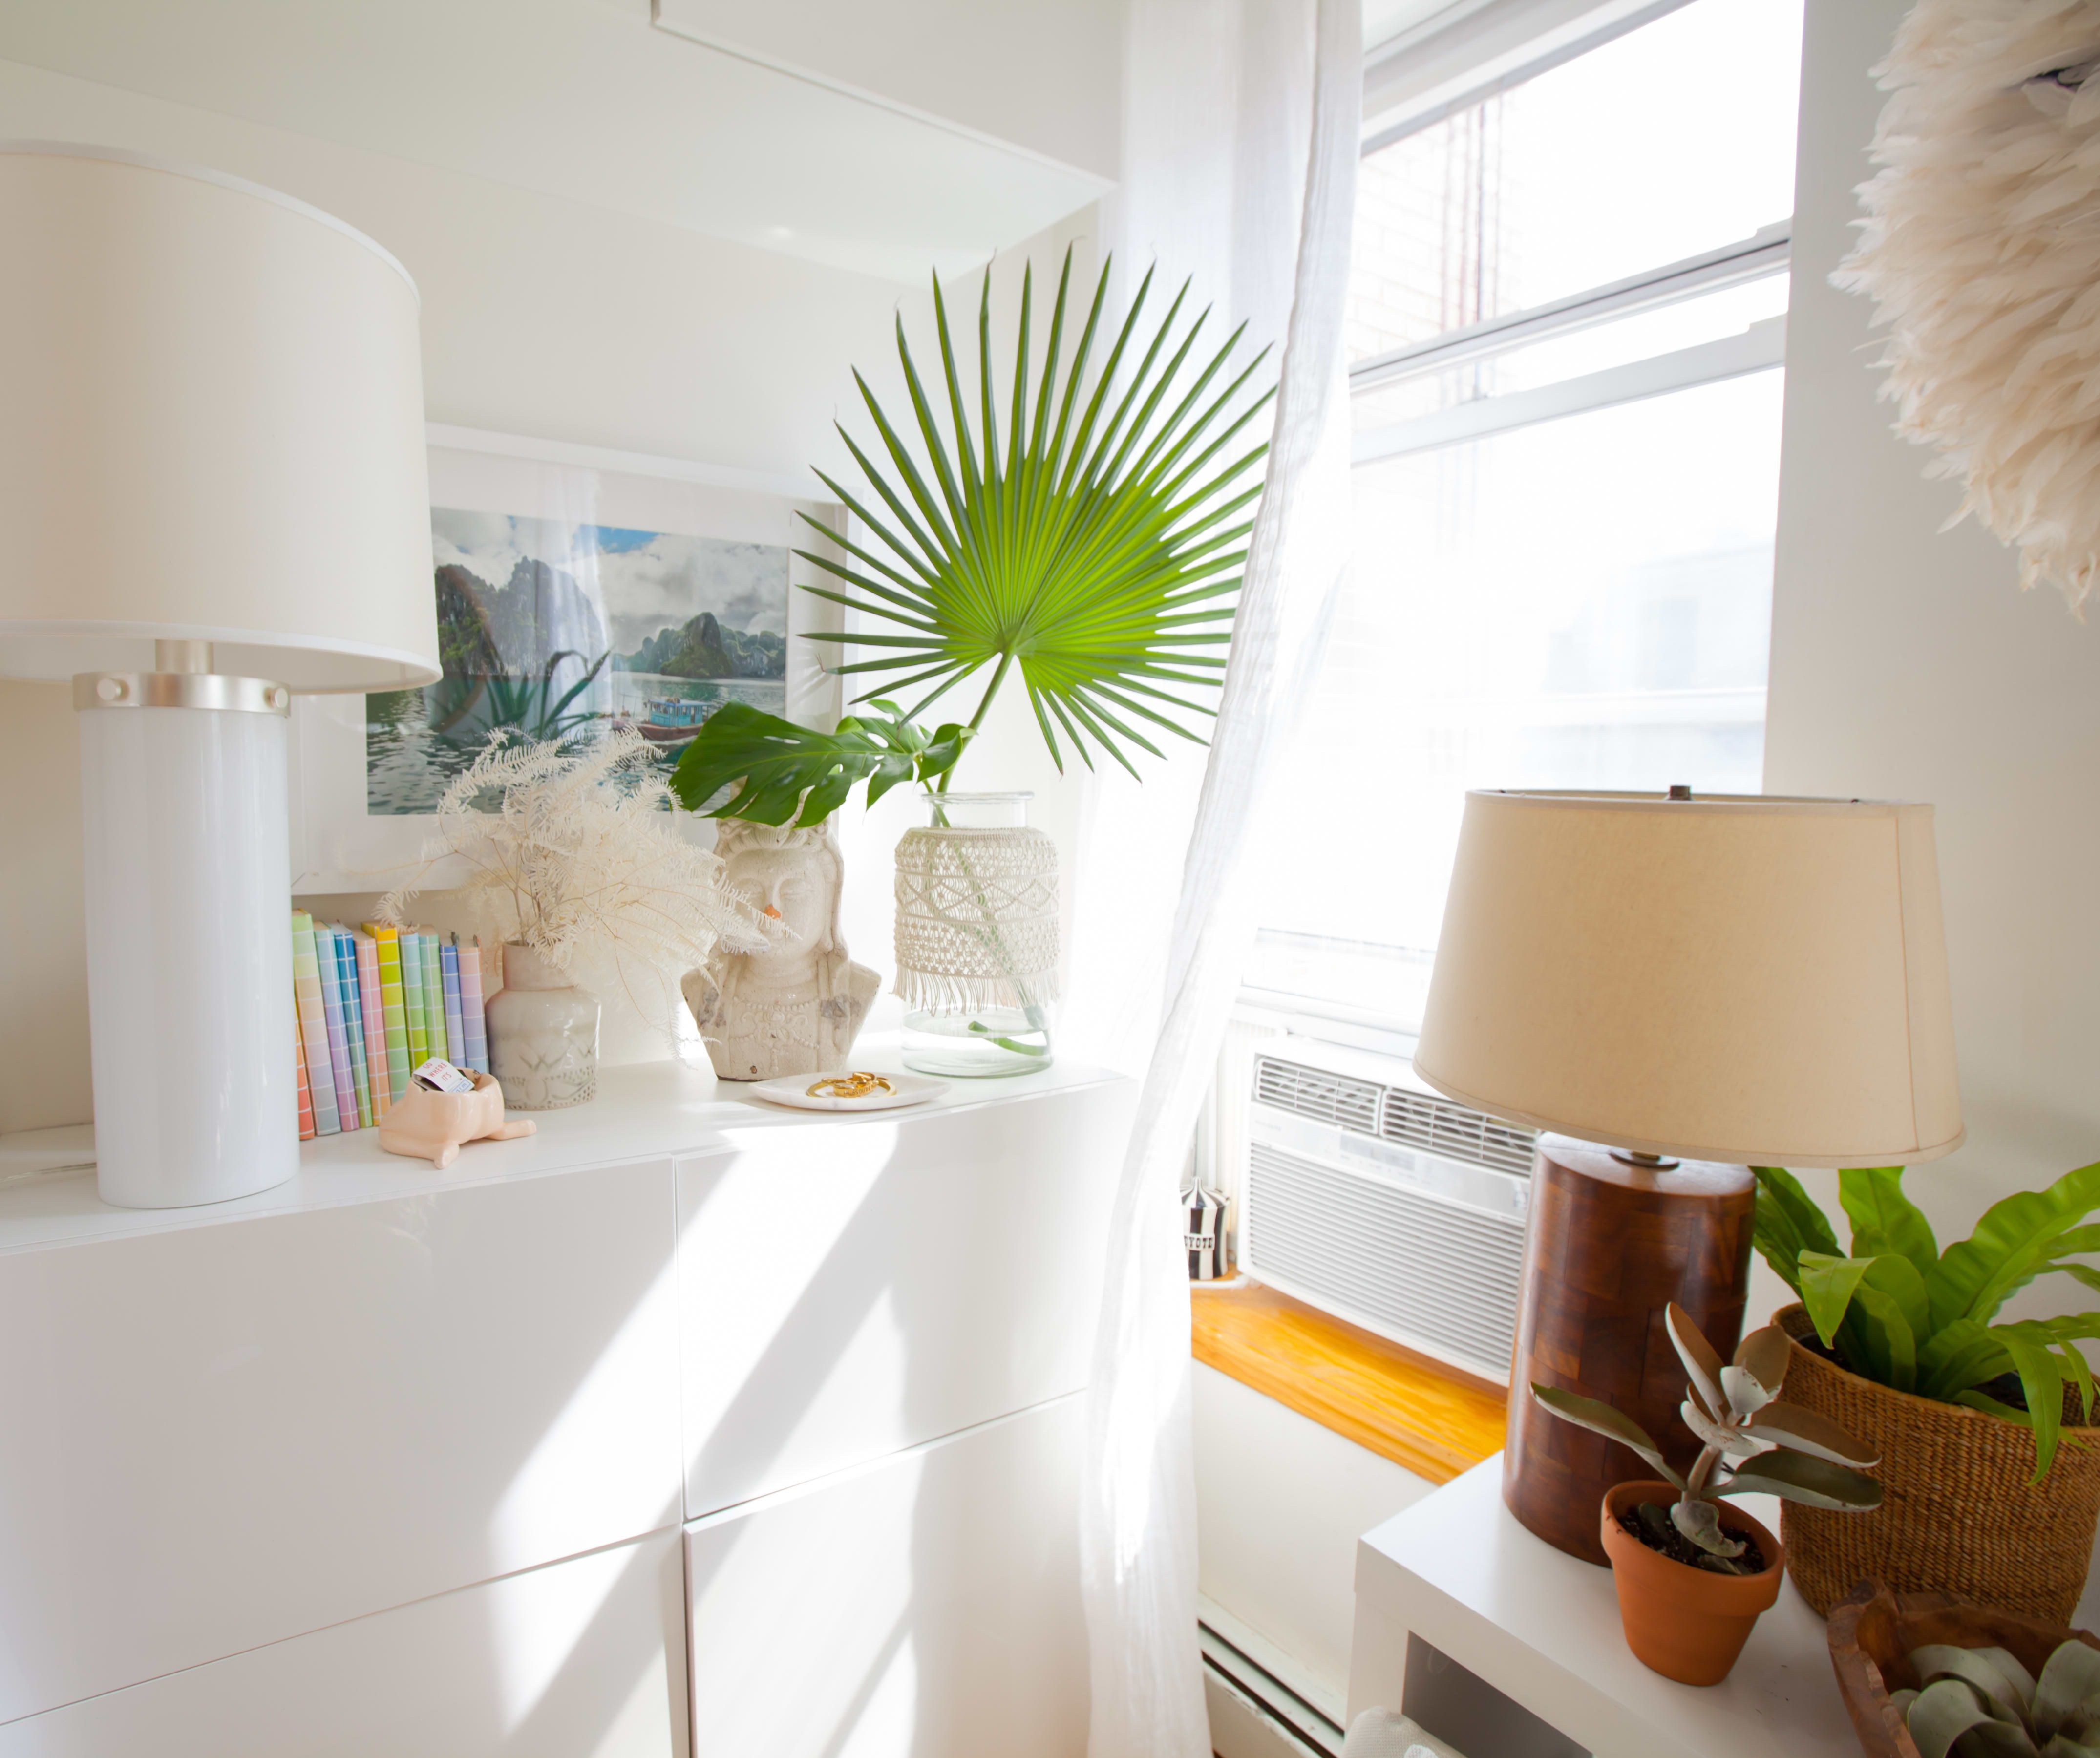 New York Studio Apartments: This Tiny 280-Square-Foot NYC Studio Is Incredibly Cute